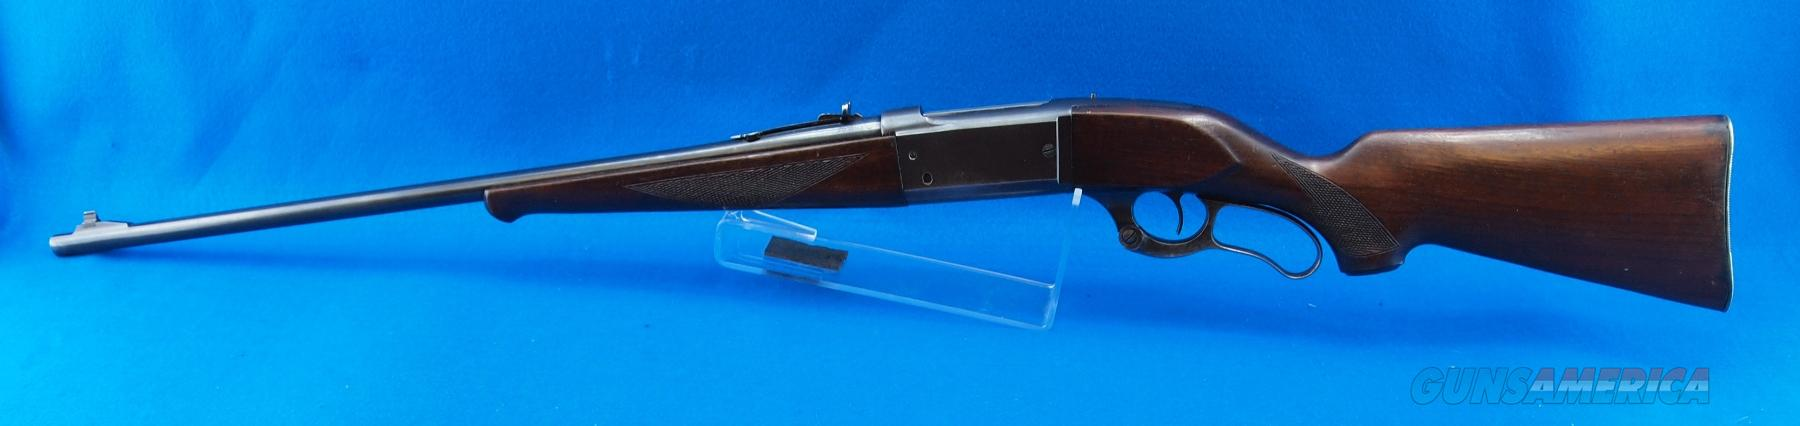 Savage Model 99 (Mfg. 1951-52) .300 Savage  Guns > Rifles > Savage Rifles > Model 95/99 Family